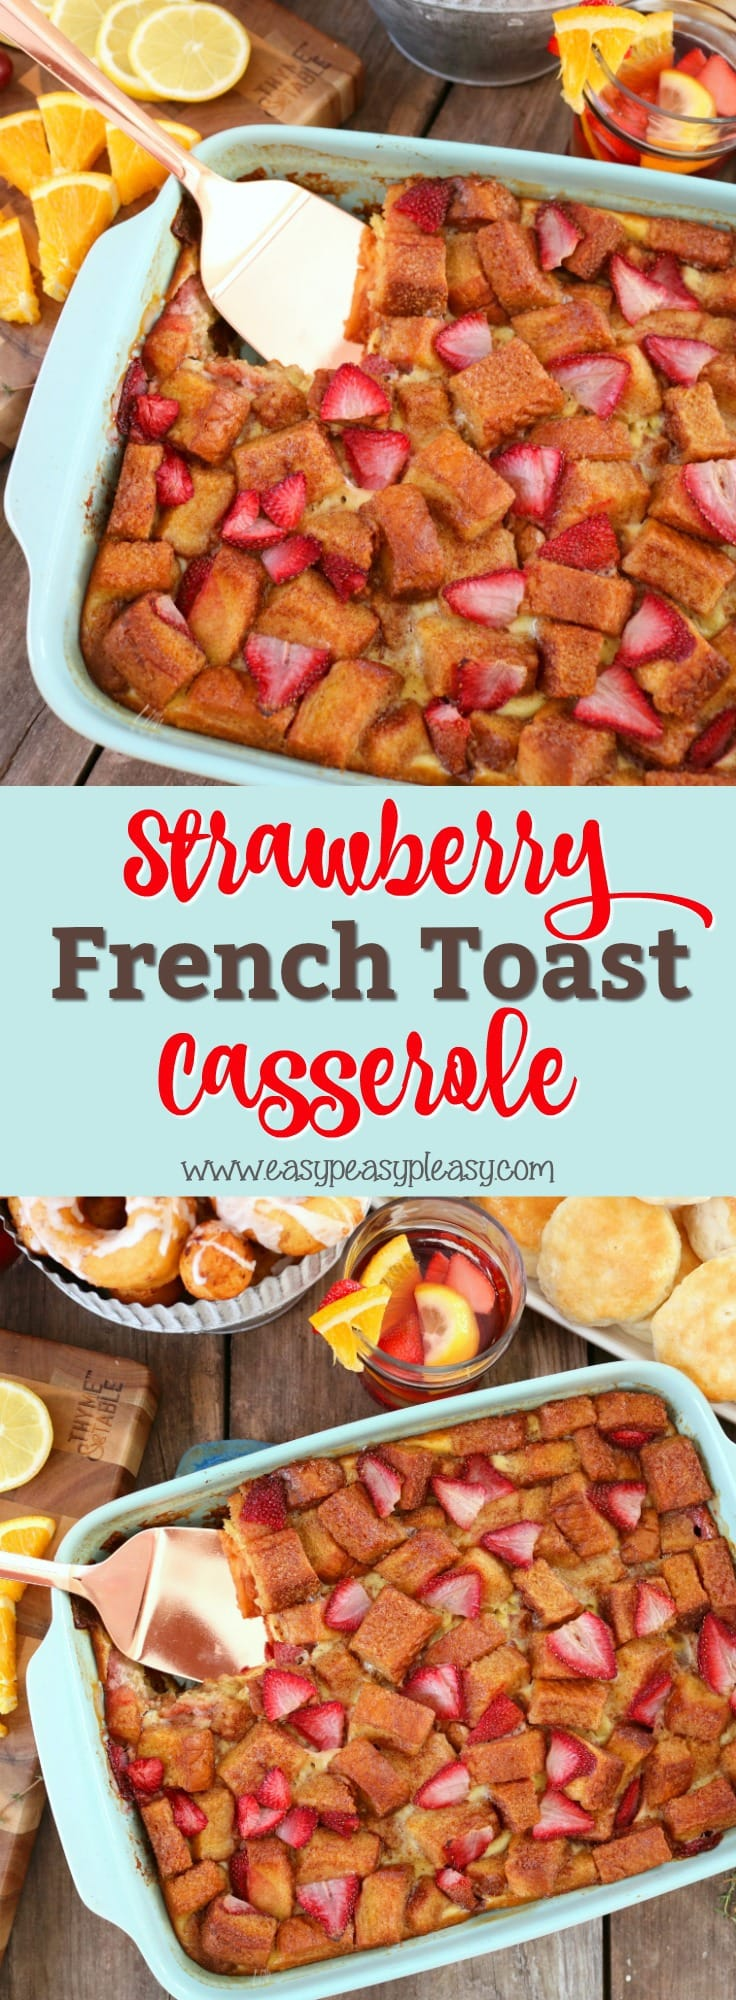 This Strawberry French Toast Casserole is sure to hit the spot. With only 7 ingredients, it comes together in minutes and will be permenant on your brunch and breakfast menu.